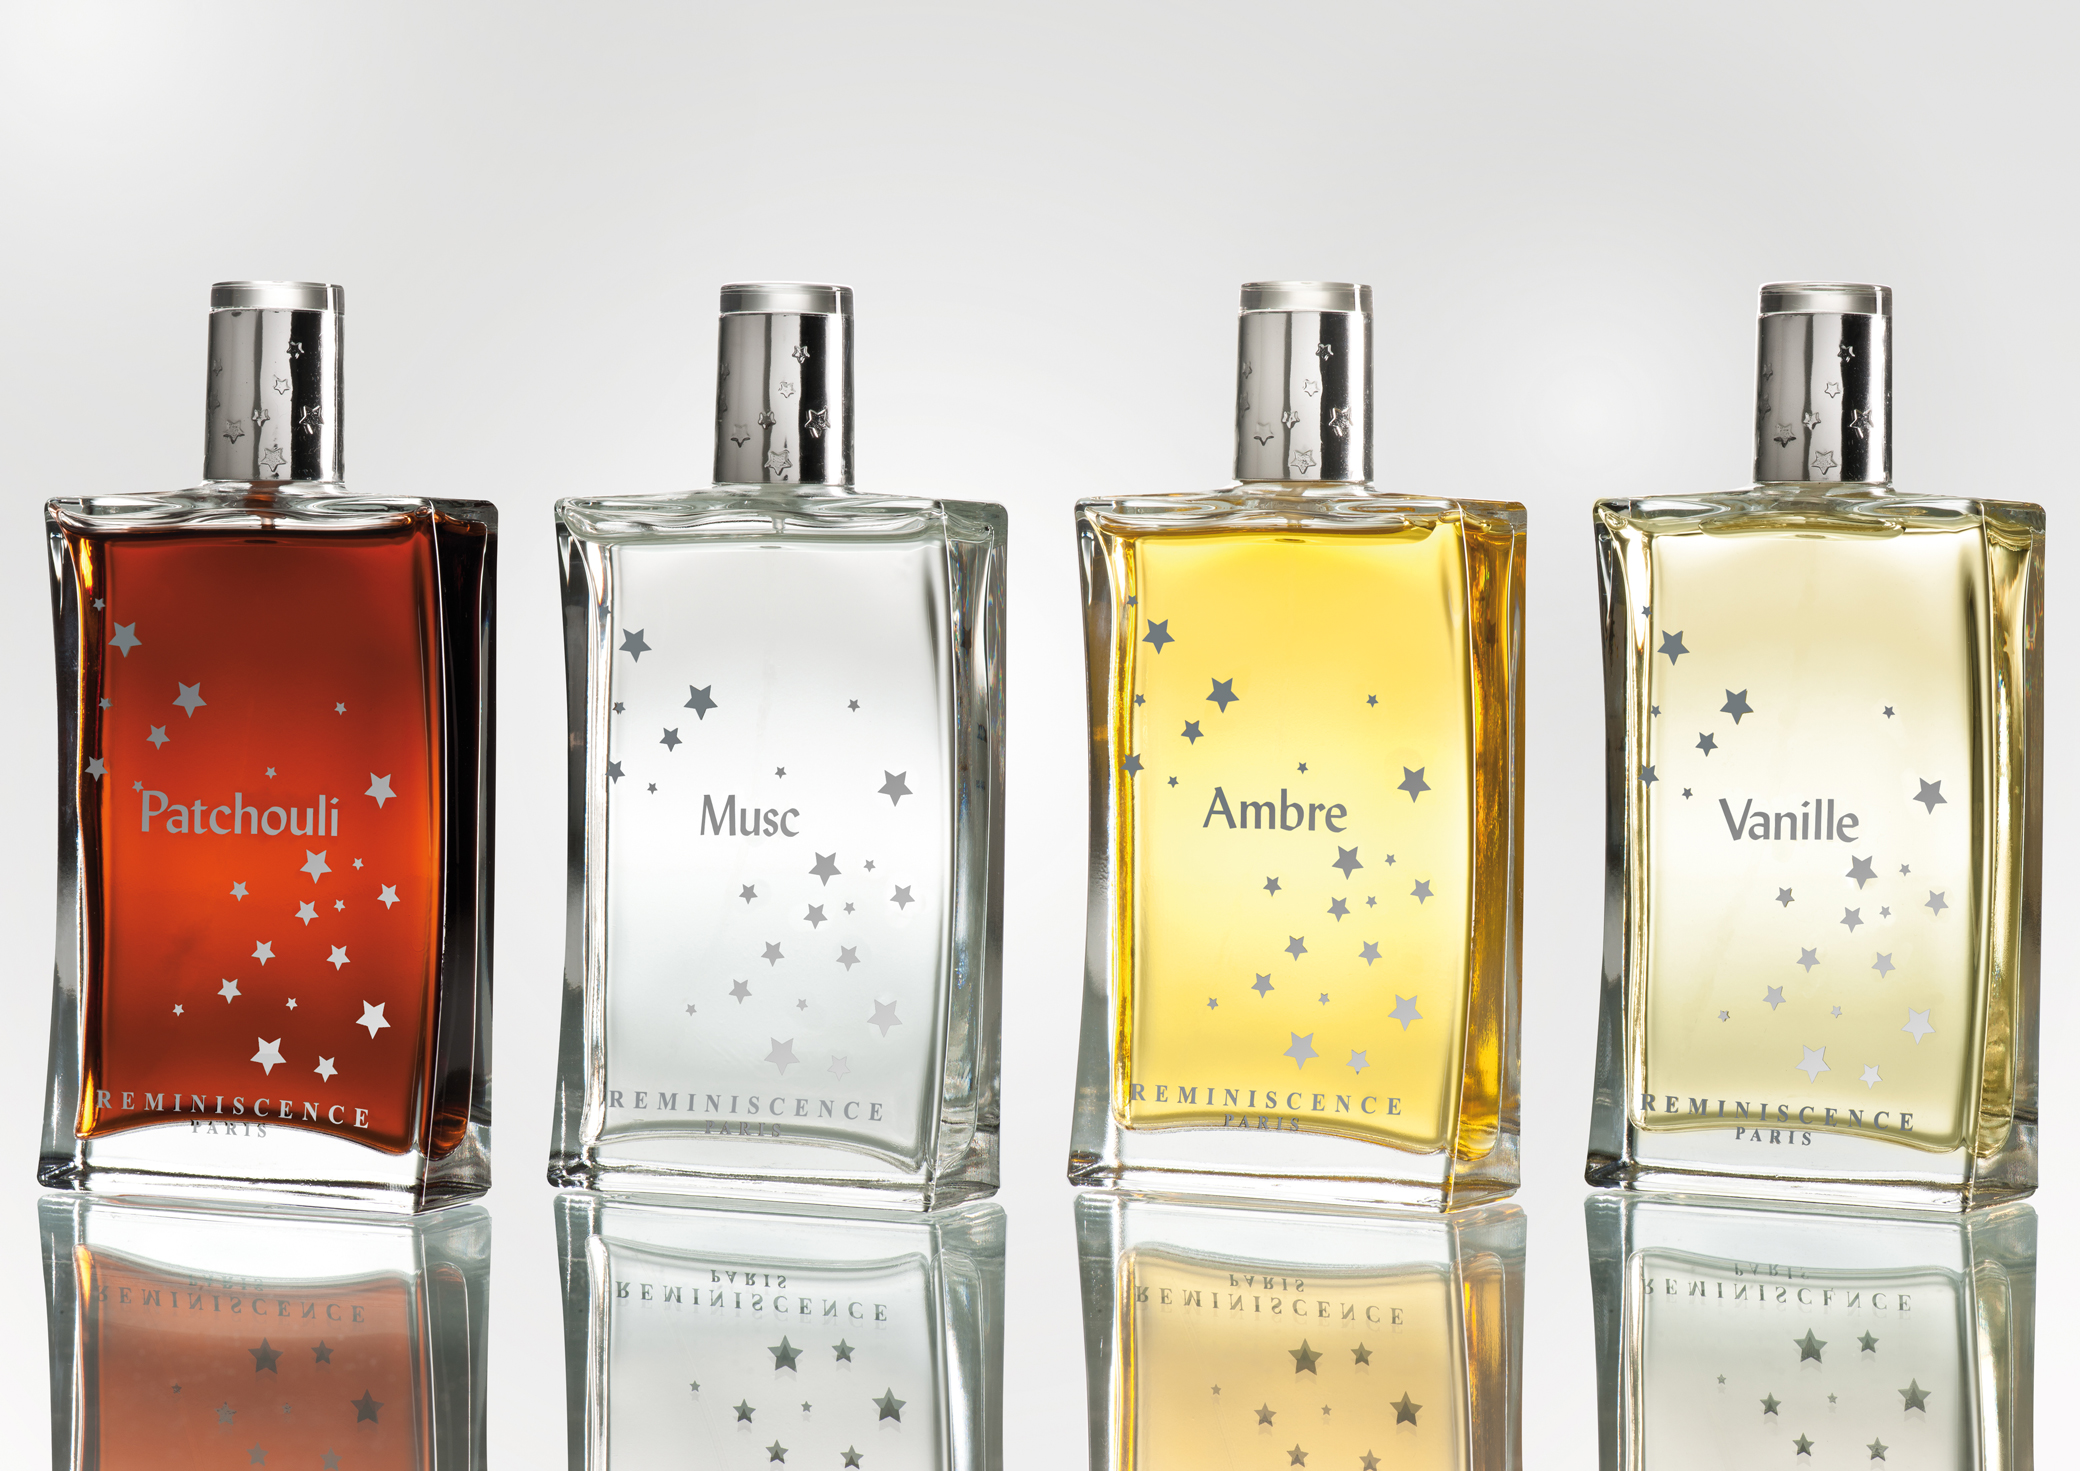 Reminiscence perfumes at White Gallery